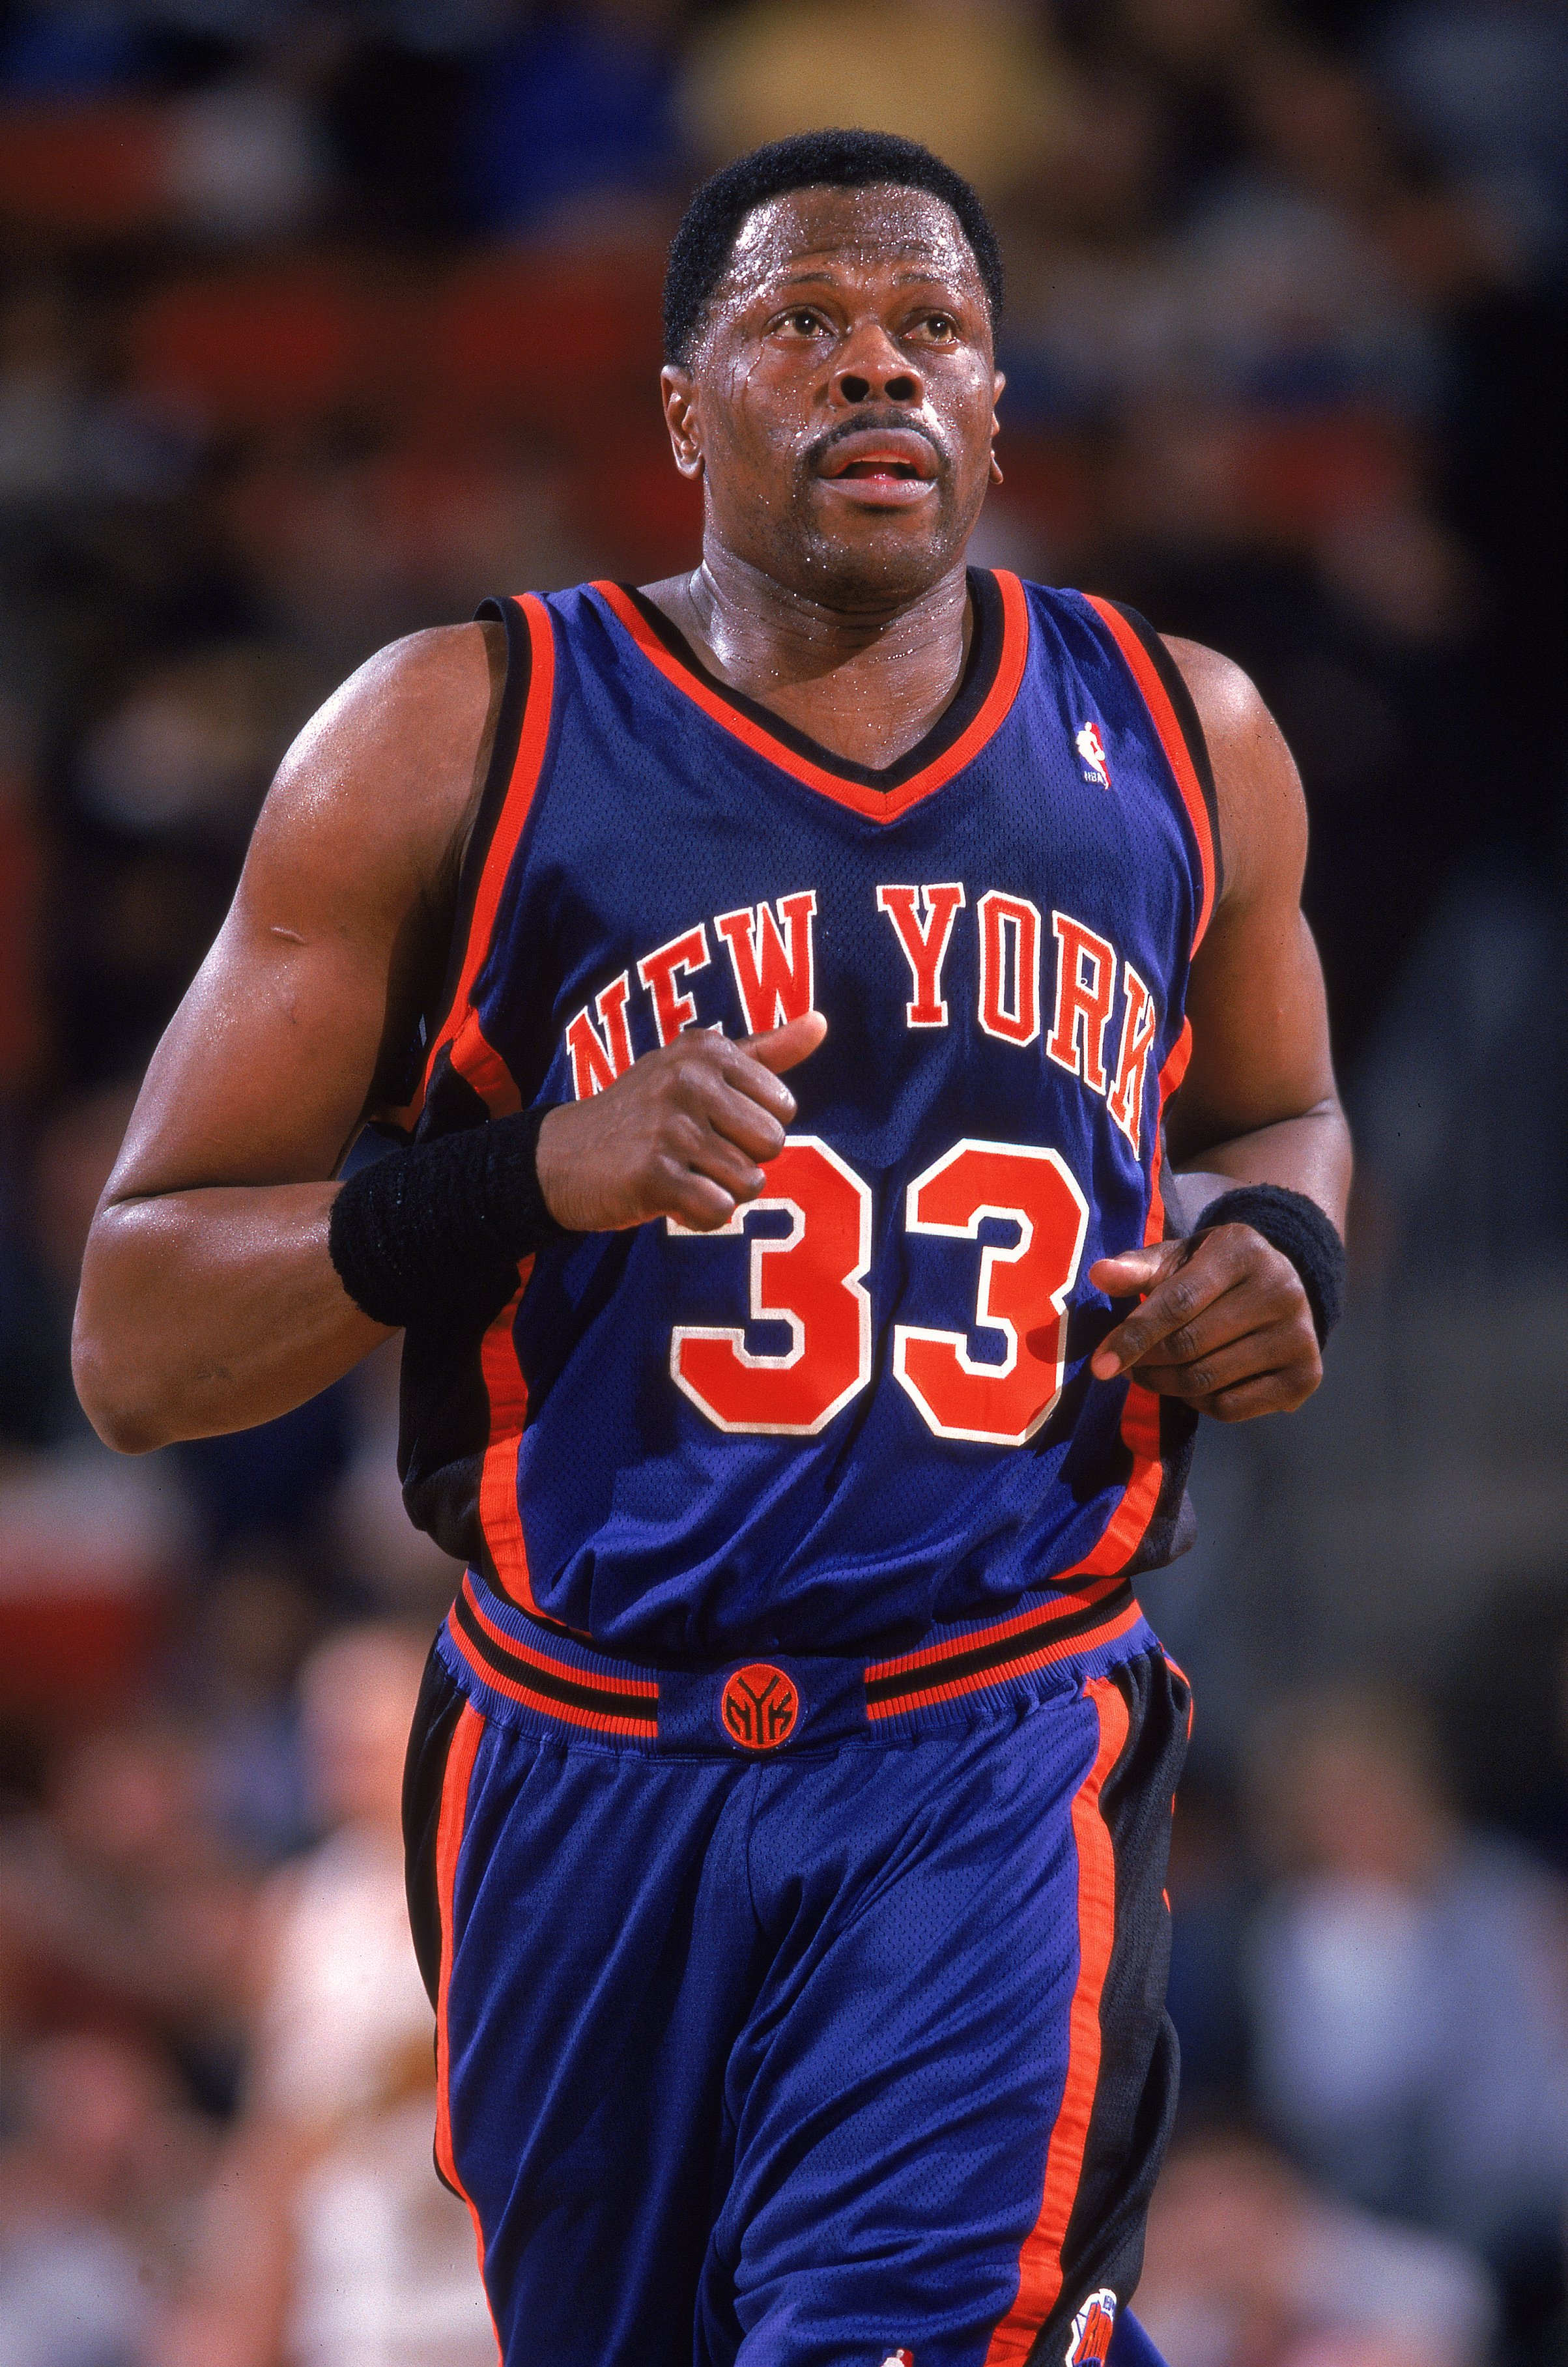 29 Mar 2000: Patrick Ewing #33 of the New York Knicks jogs down the   court during a game against the Seattle SuperSonics at Key Arena in Seattle, Washington. The Knicks defeated the SuperSonics 110-95.   Mandatory Credit: Otto Greule Jr.  /Allsport